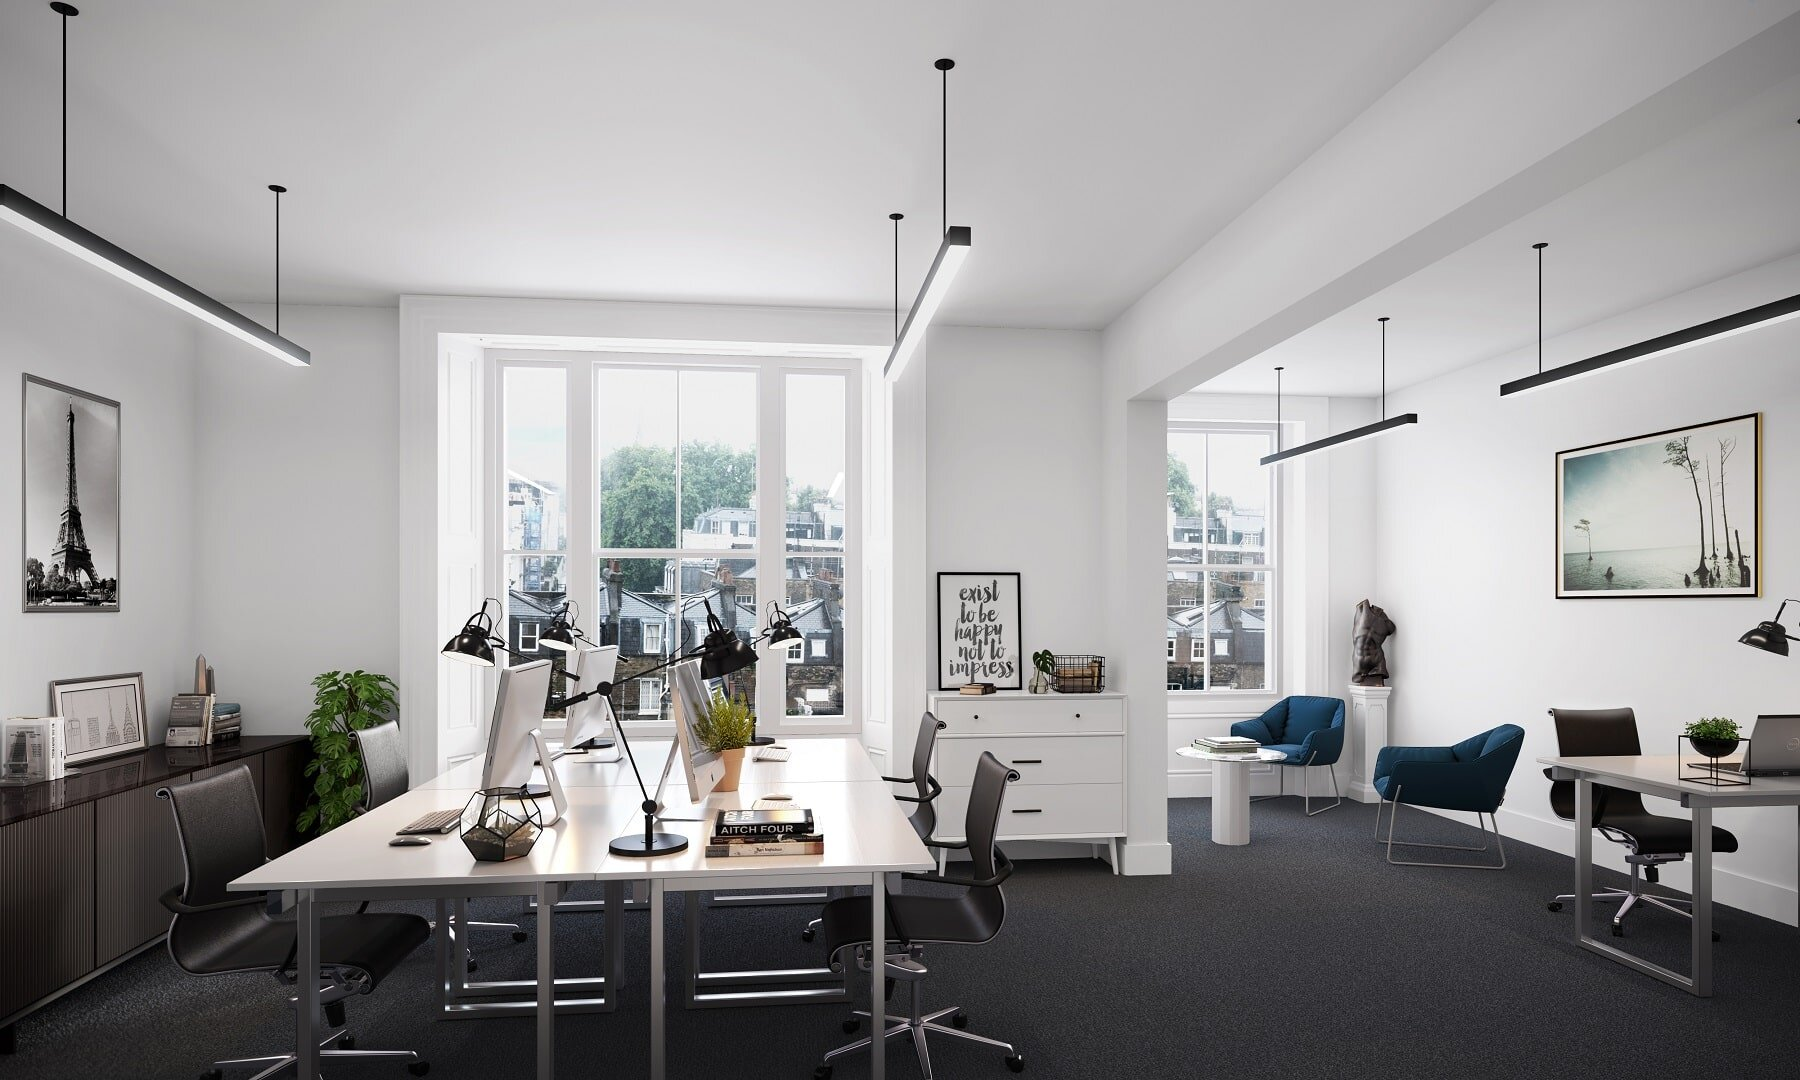 cgi-for-coworking-spaces-open-office-01-min.jpg